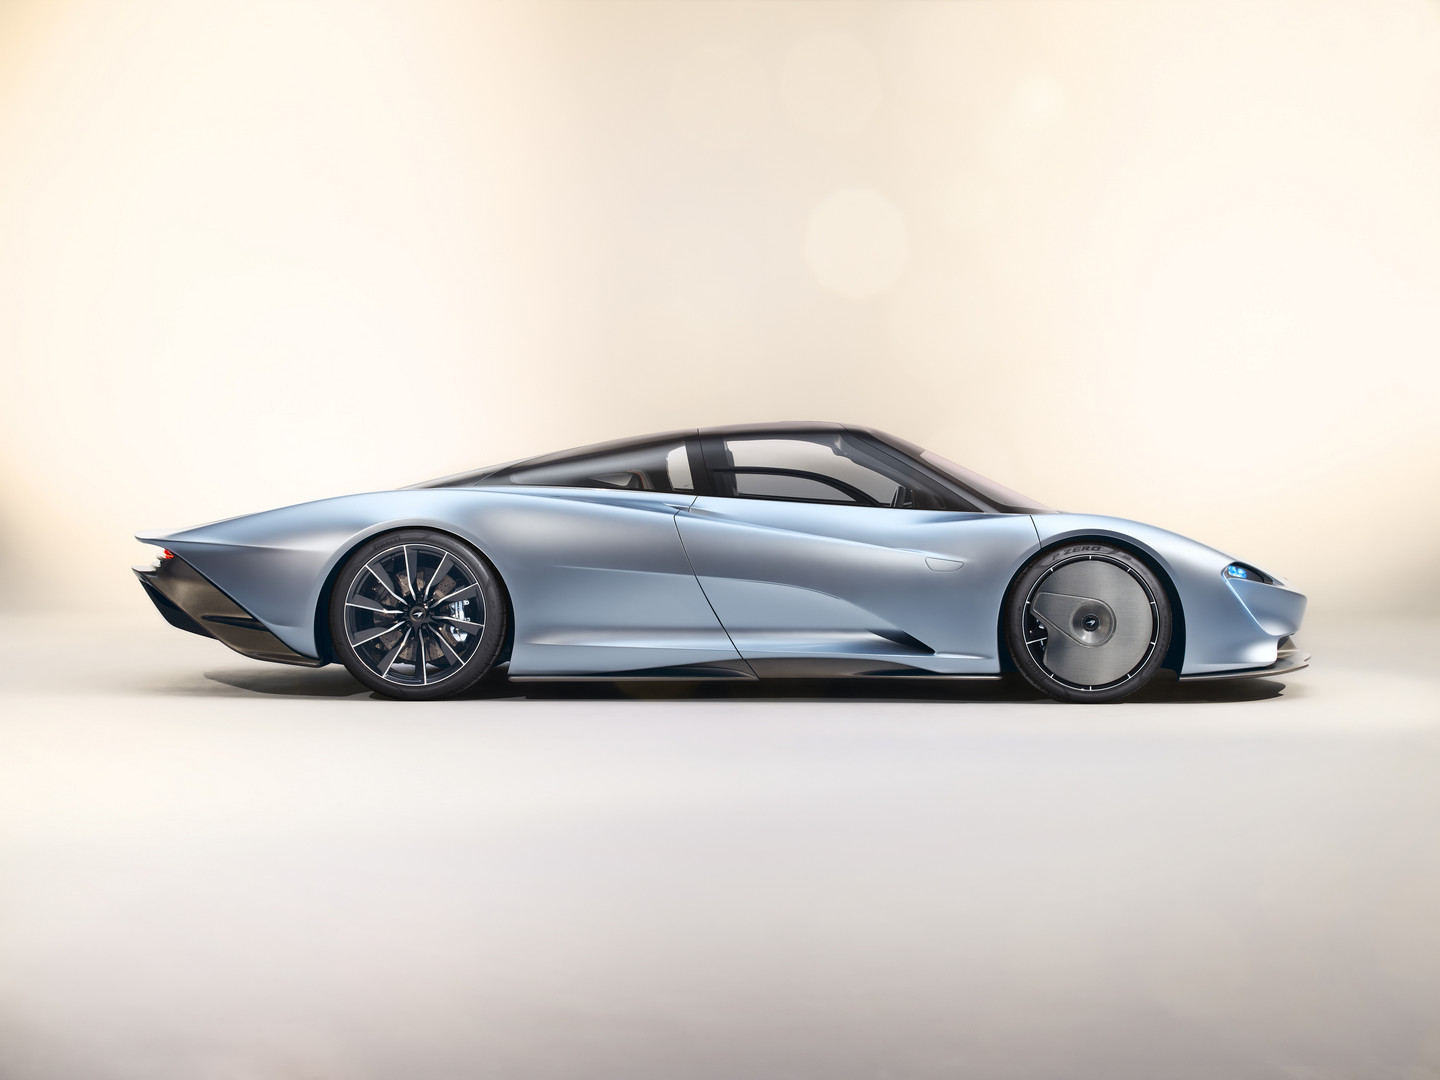 McLaren Speedtail revealed: Heir to the F1 throne